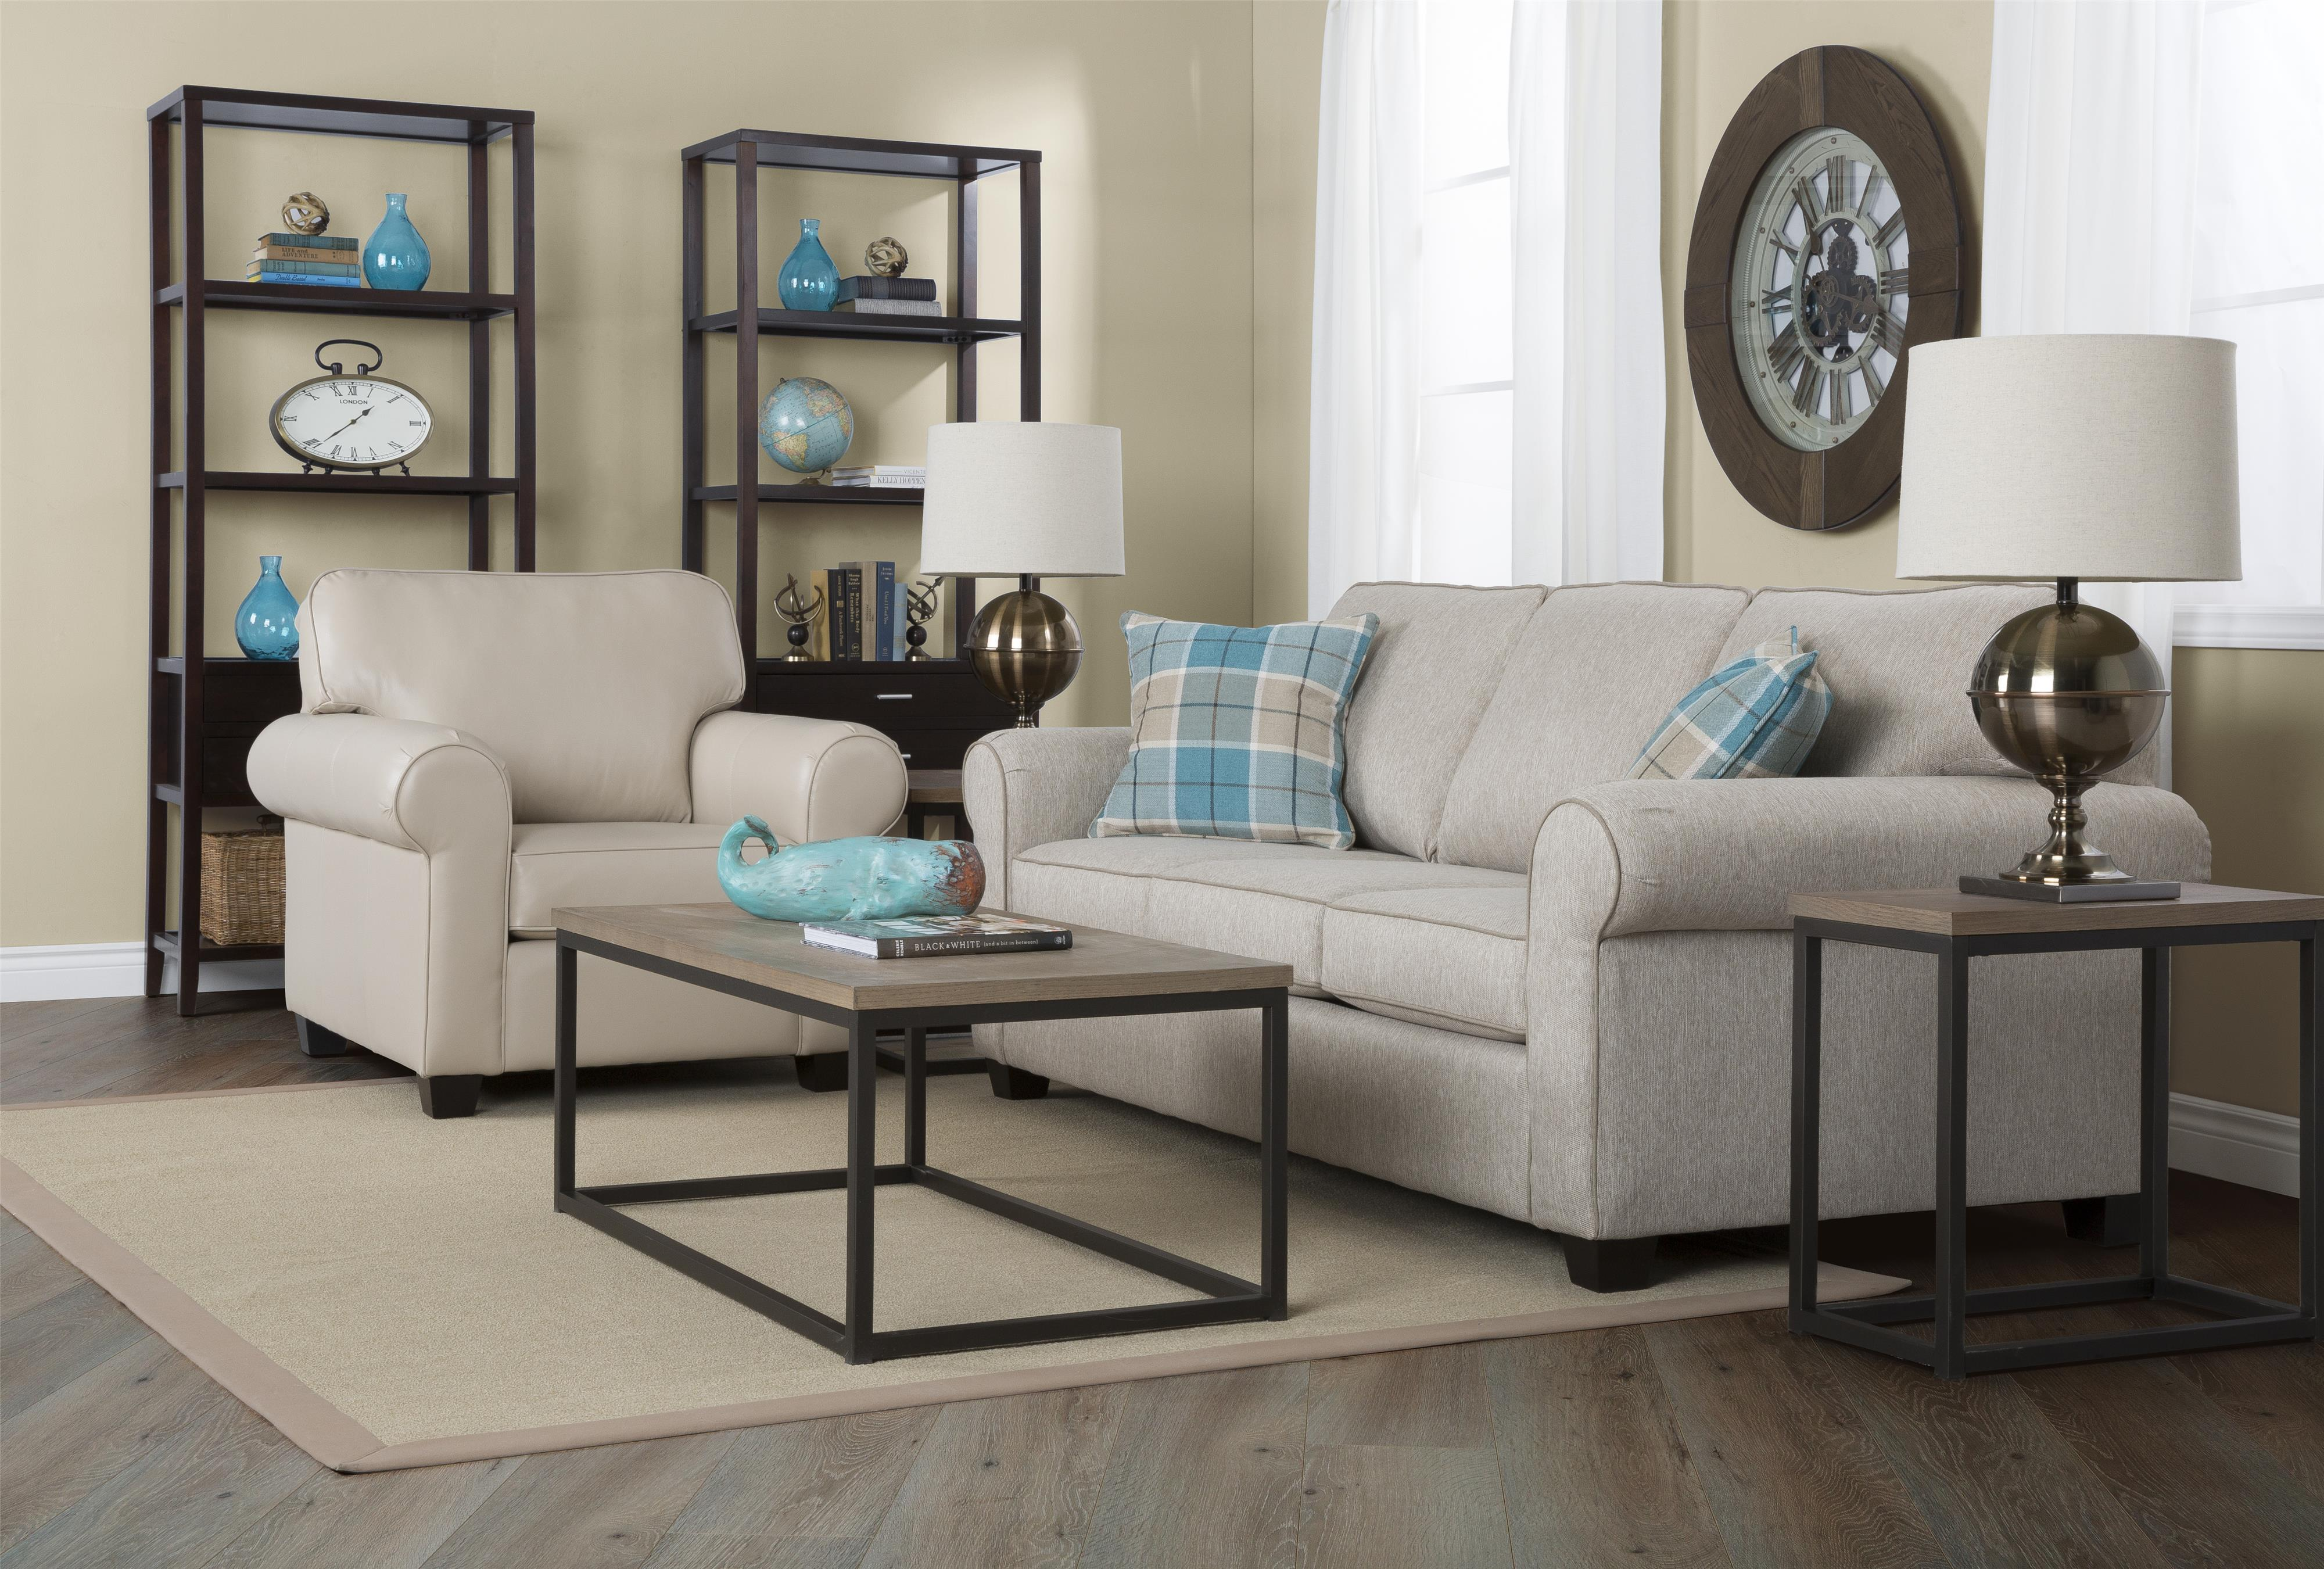 2179 Stationary Living Room Group by Decor-Rest at Lucas Furniture & Mattress